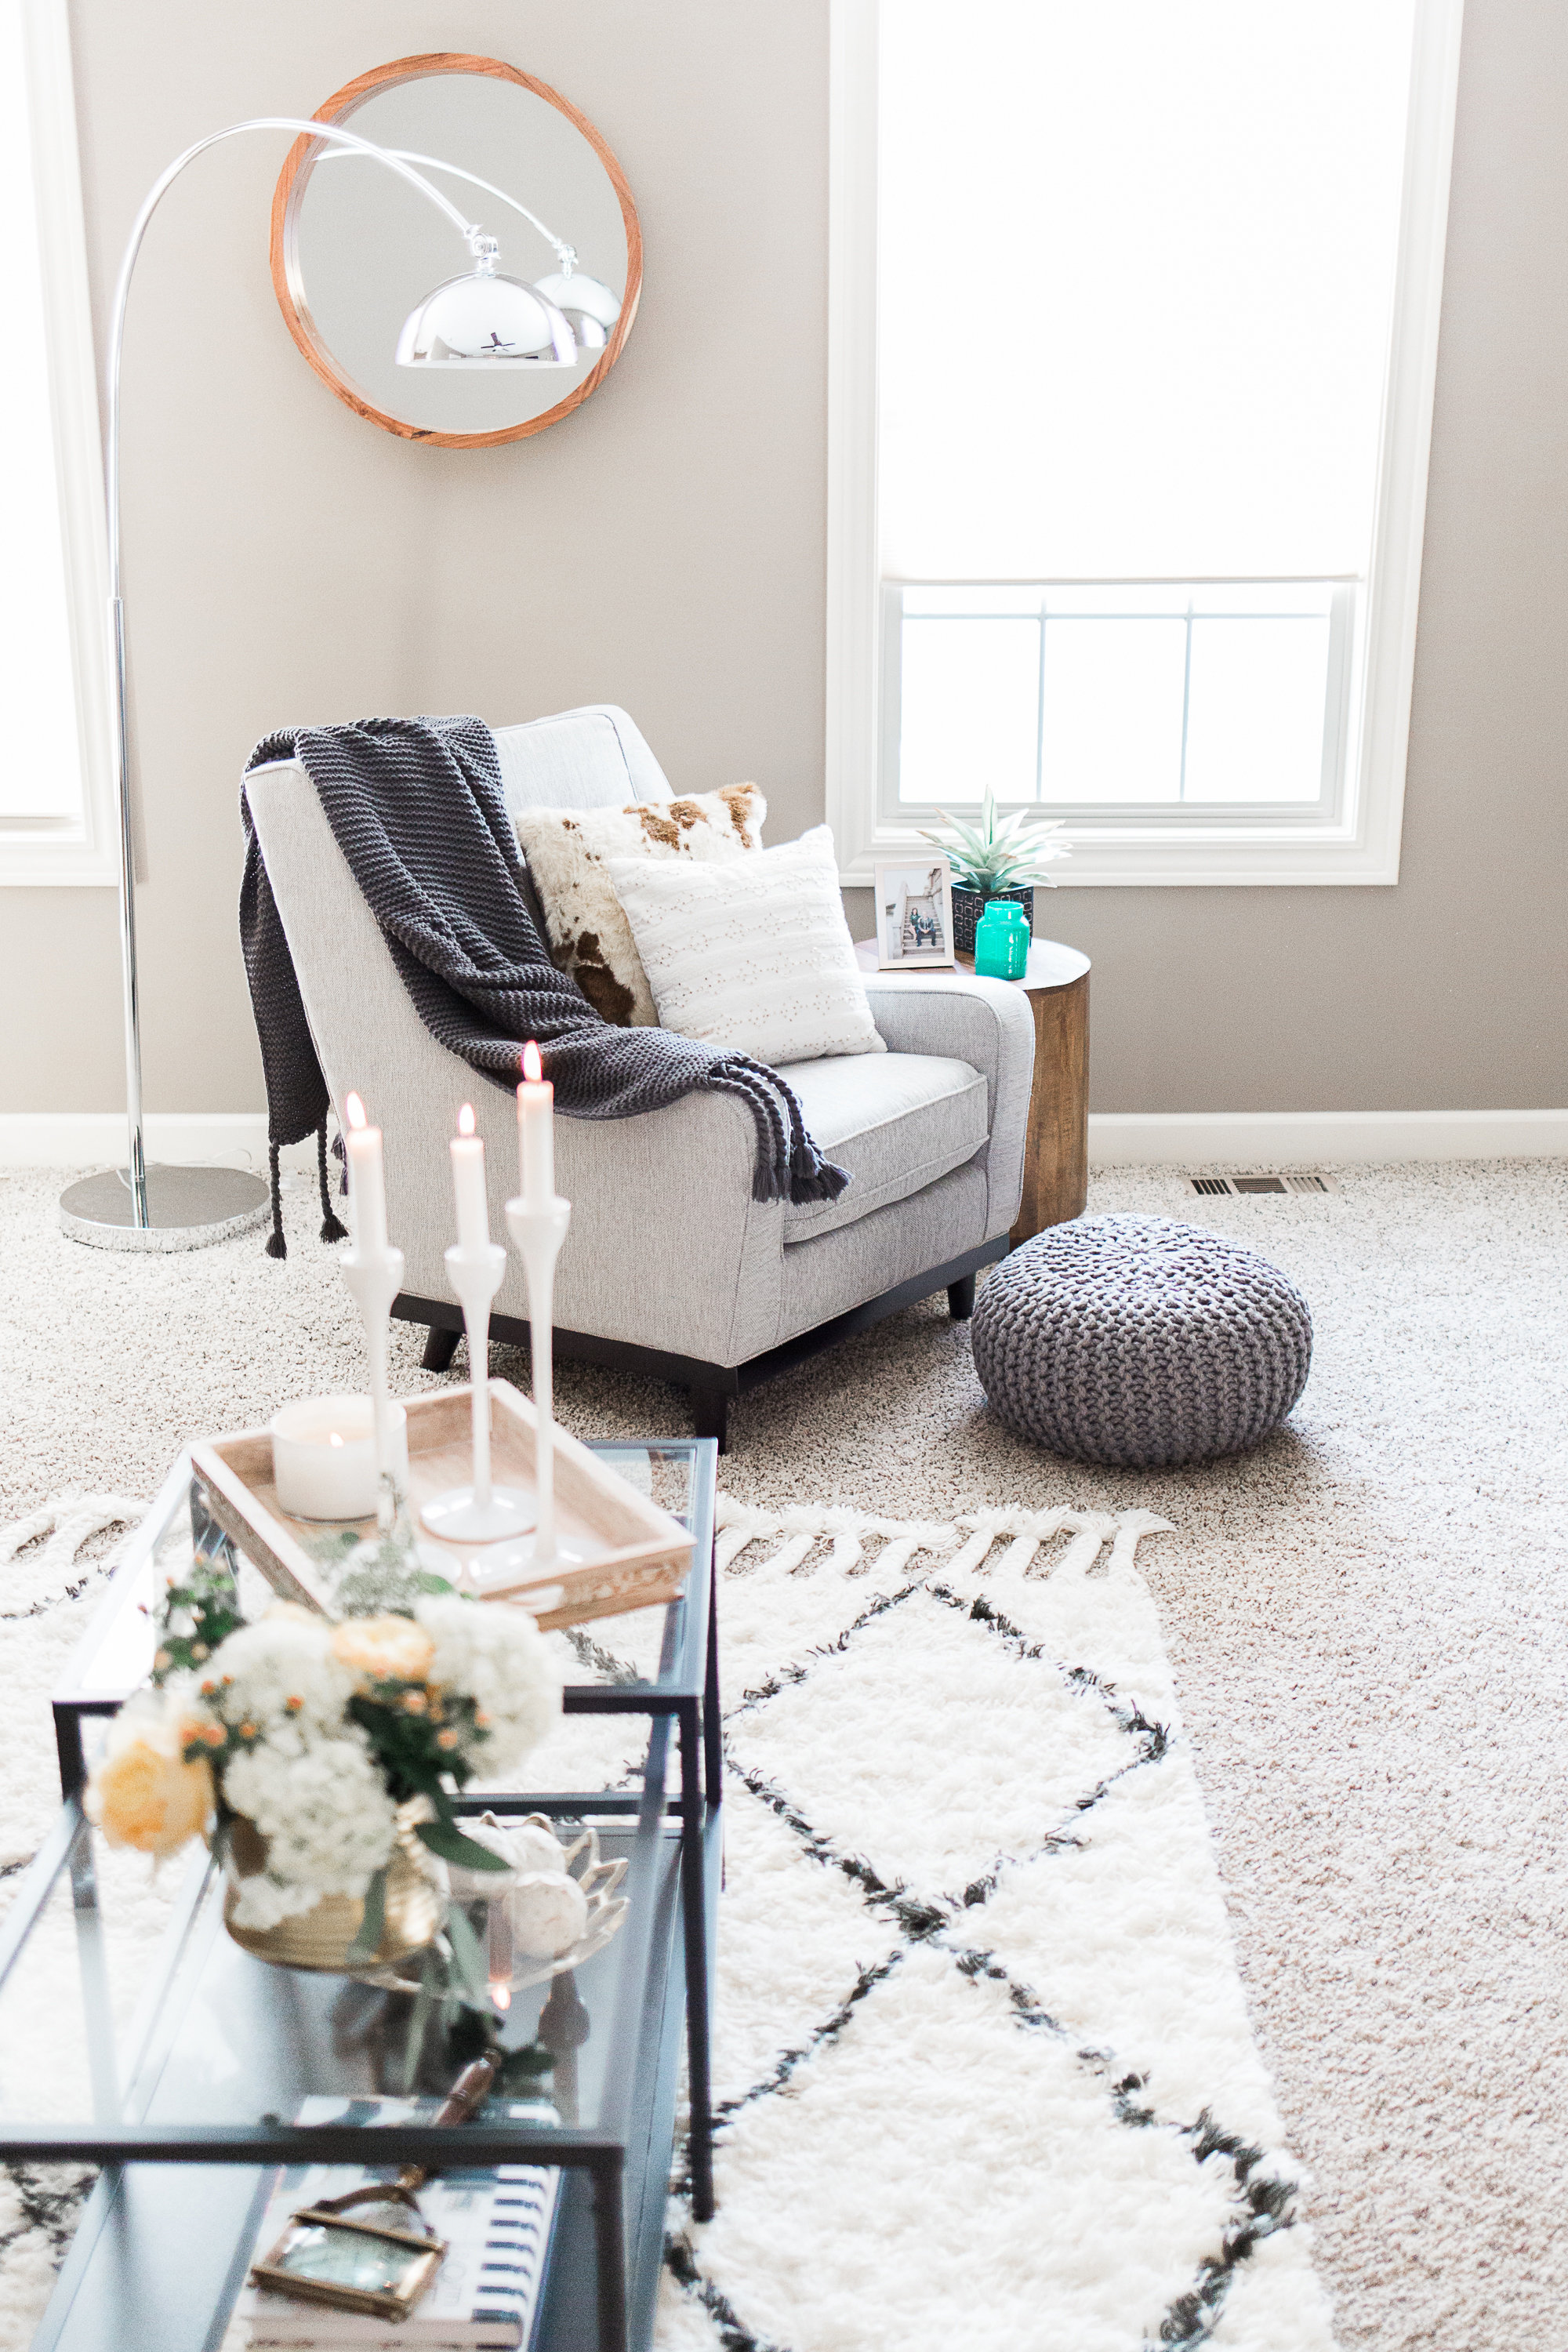 4 Easy Decorating Ideas To Make Your Apartment Look Bigger